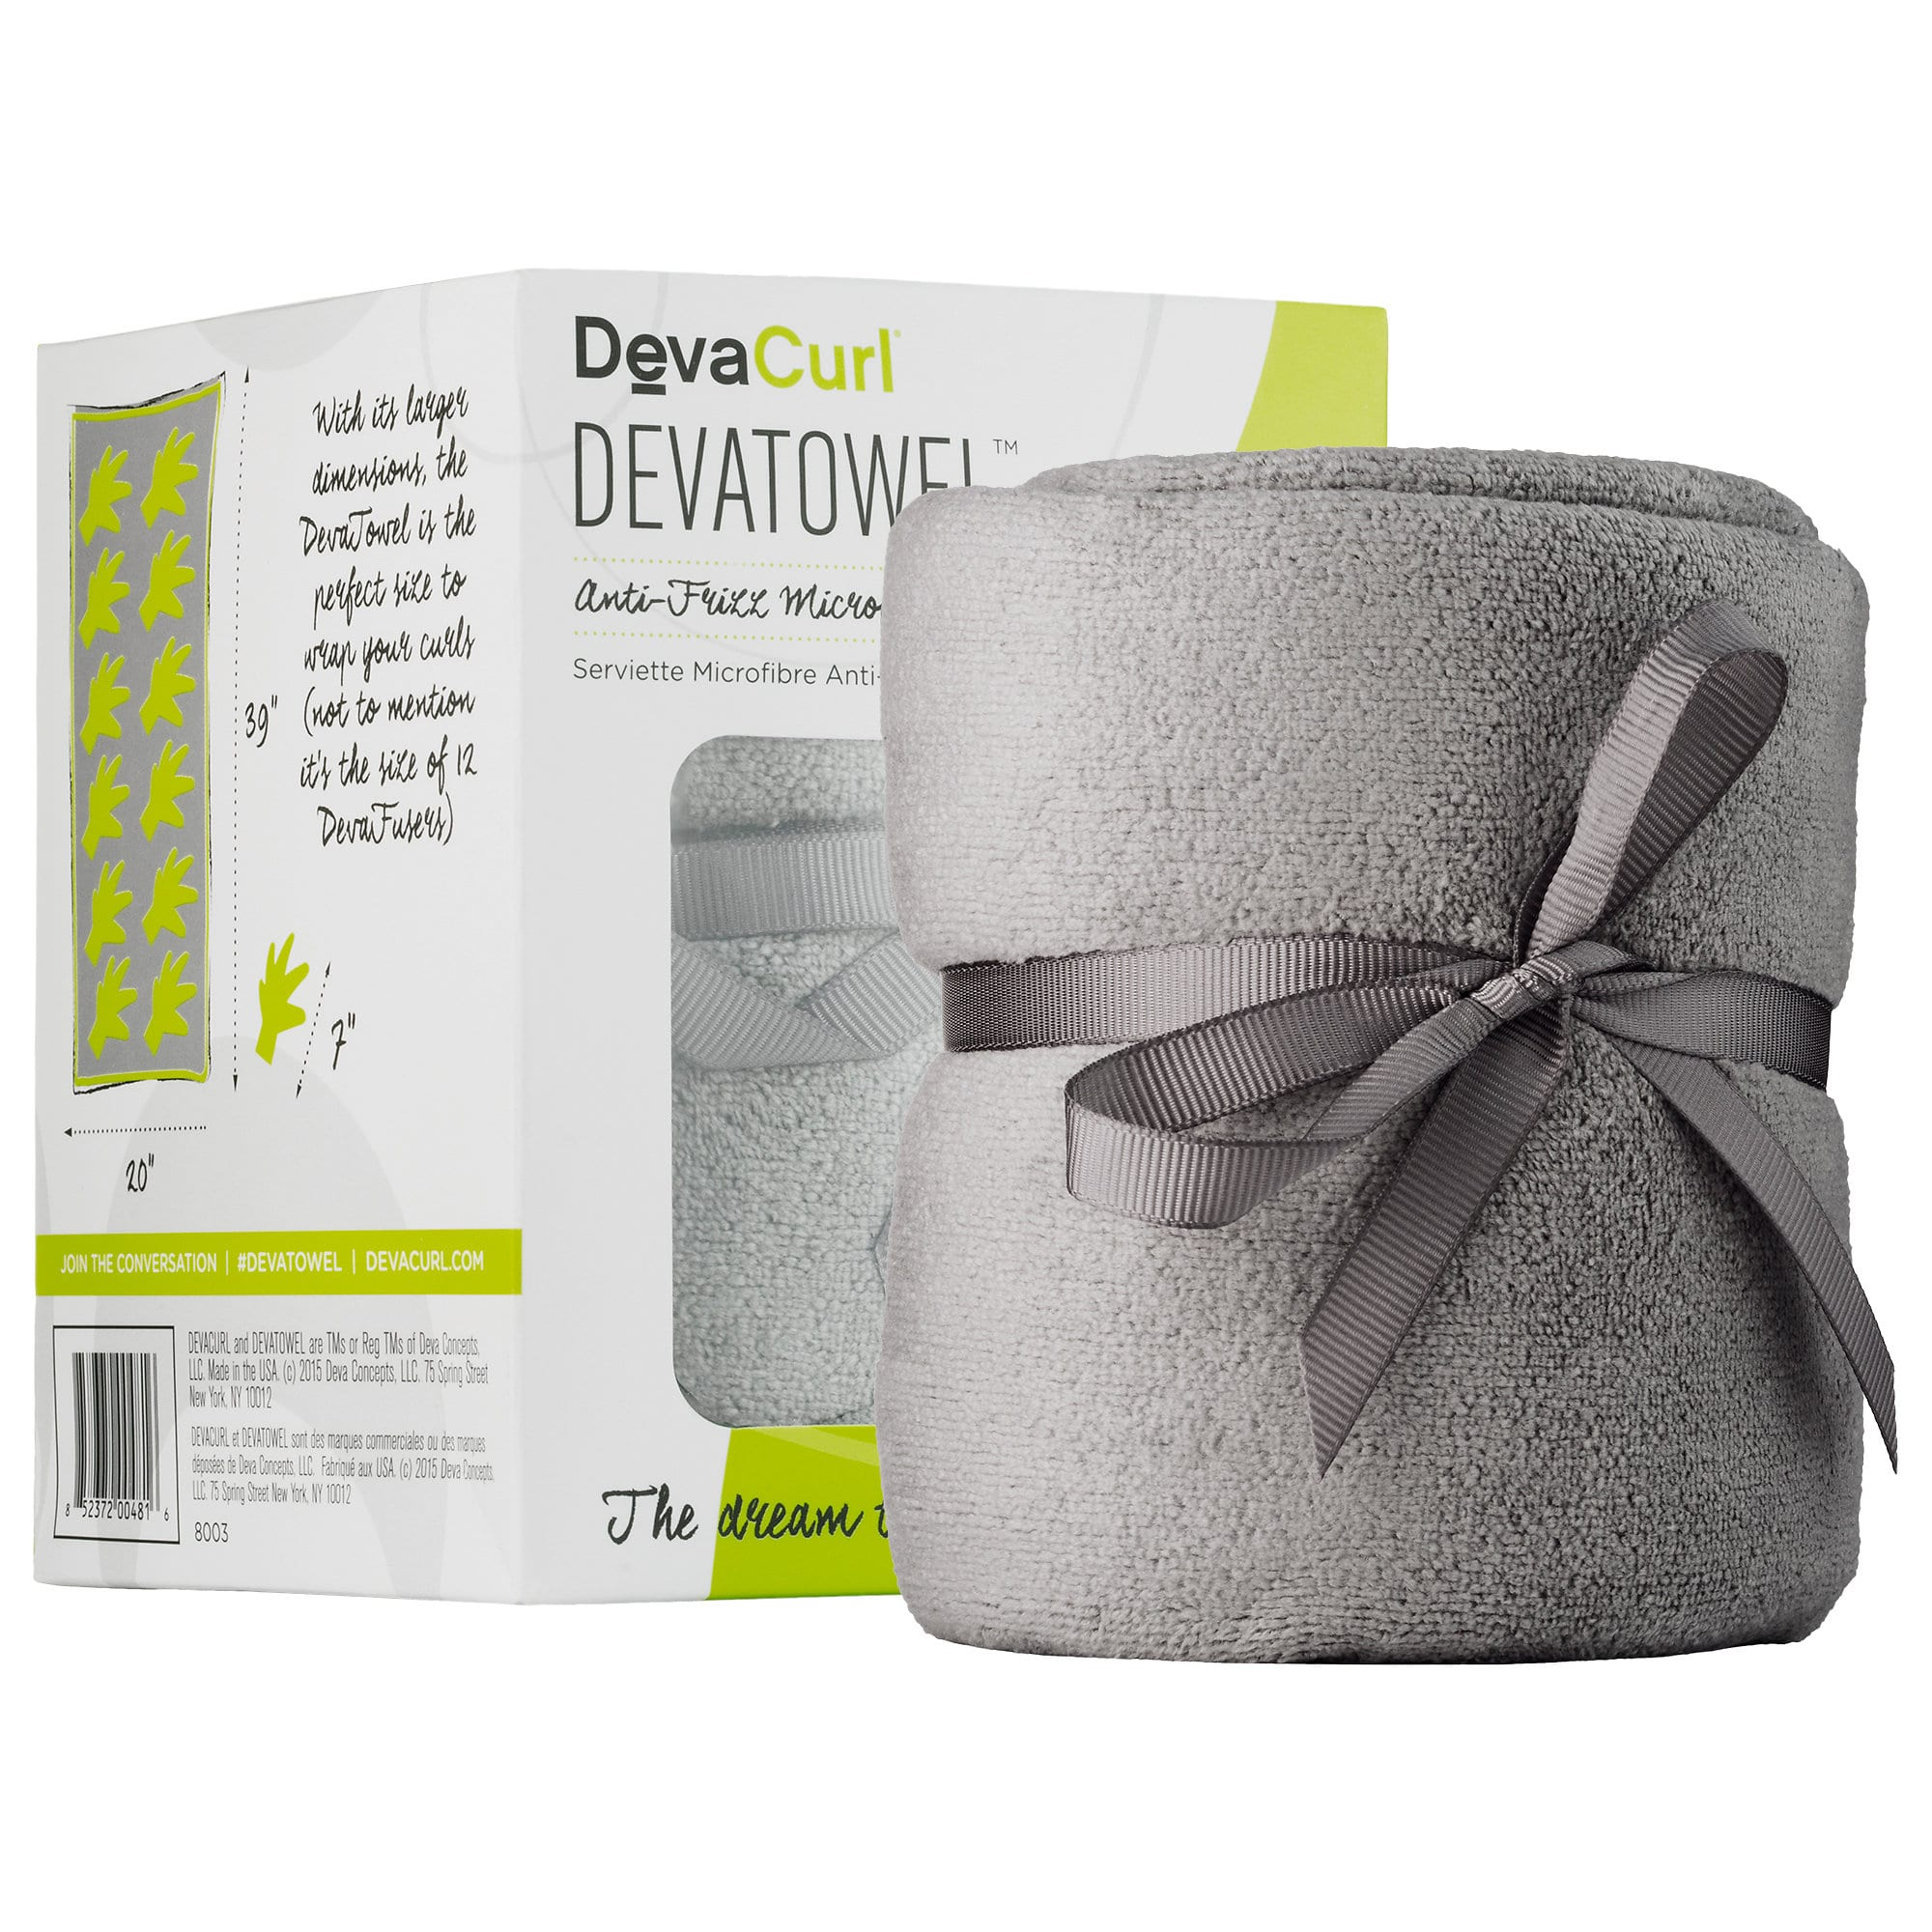 DevaCurl Microfiber Towel  - As featured as a #POTM in the Product Bible, The DevaTowel is our favorite!